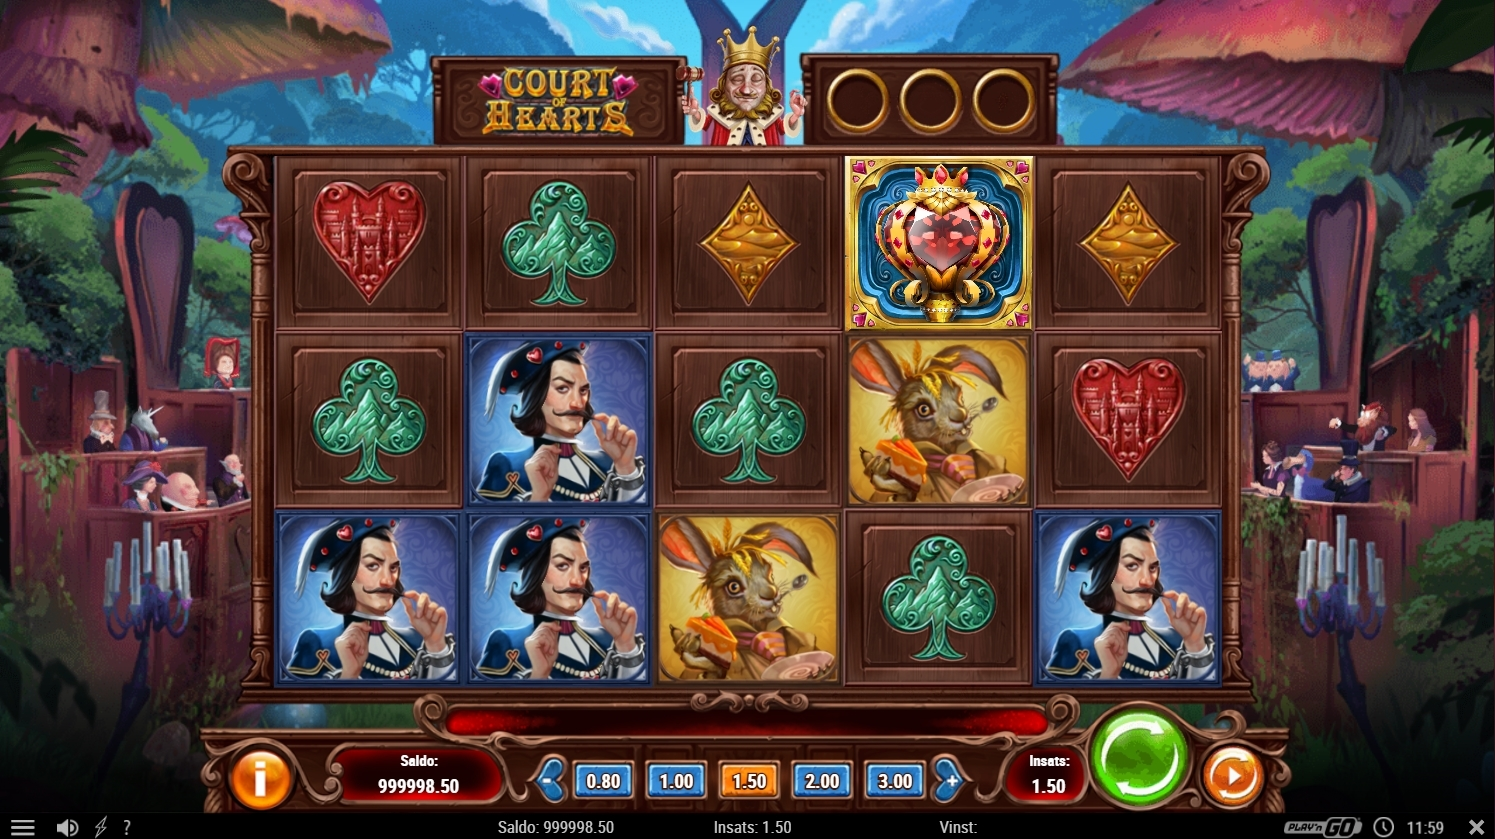 court-of-hearts-slot